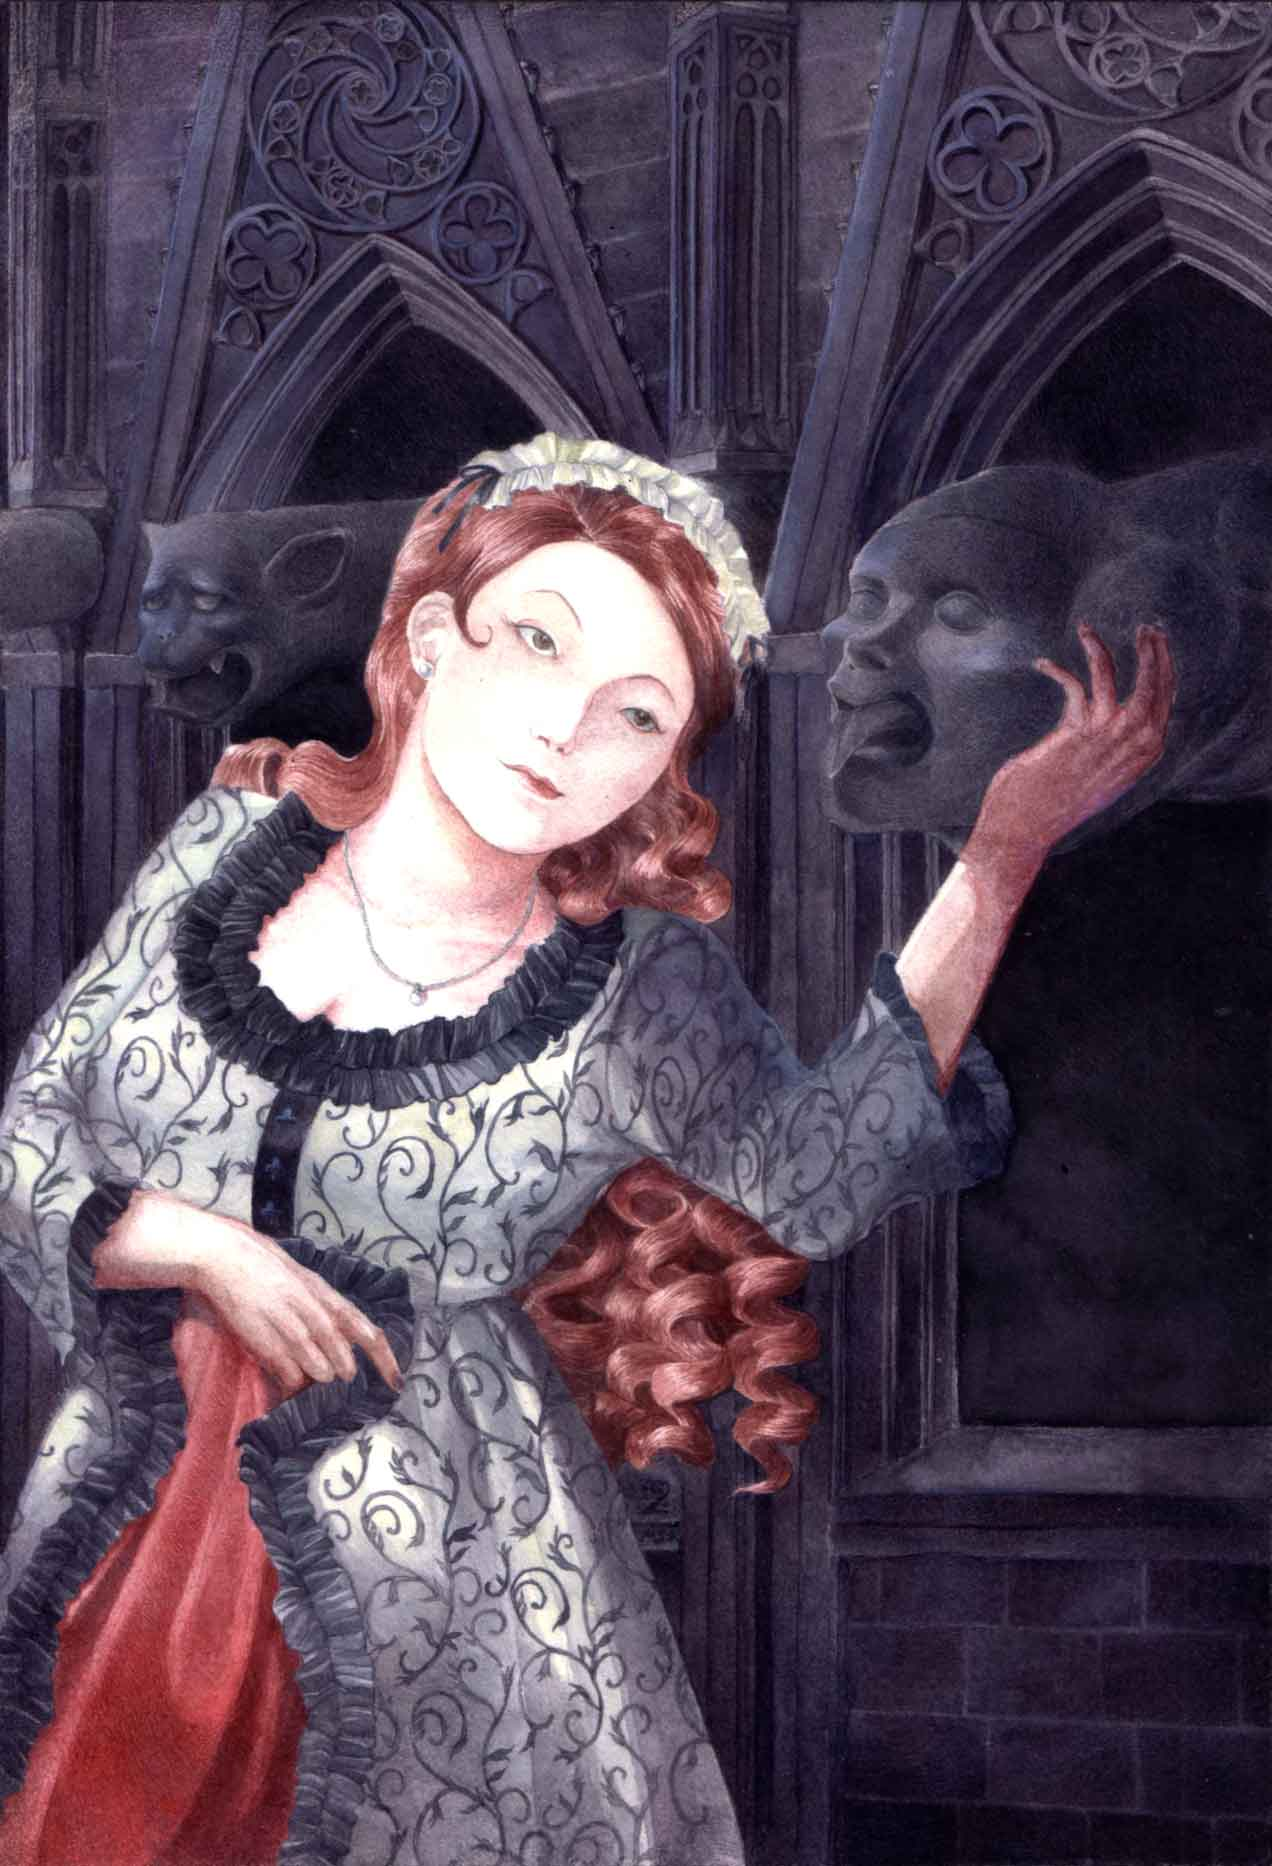 Portrait of a lady in a medieval inspired gown holding a gargoyle in front of a cathedral.